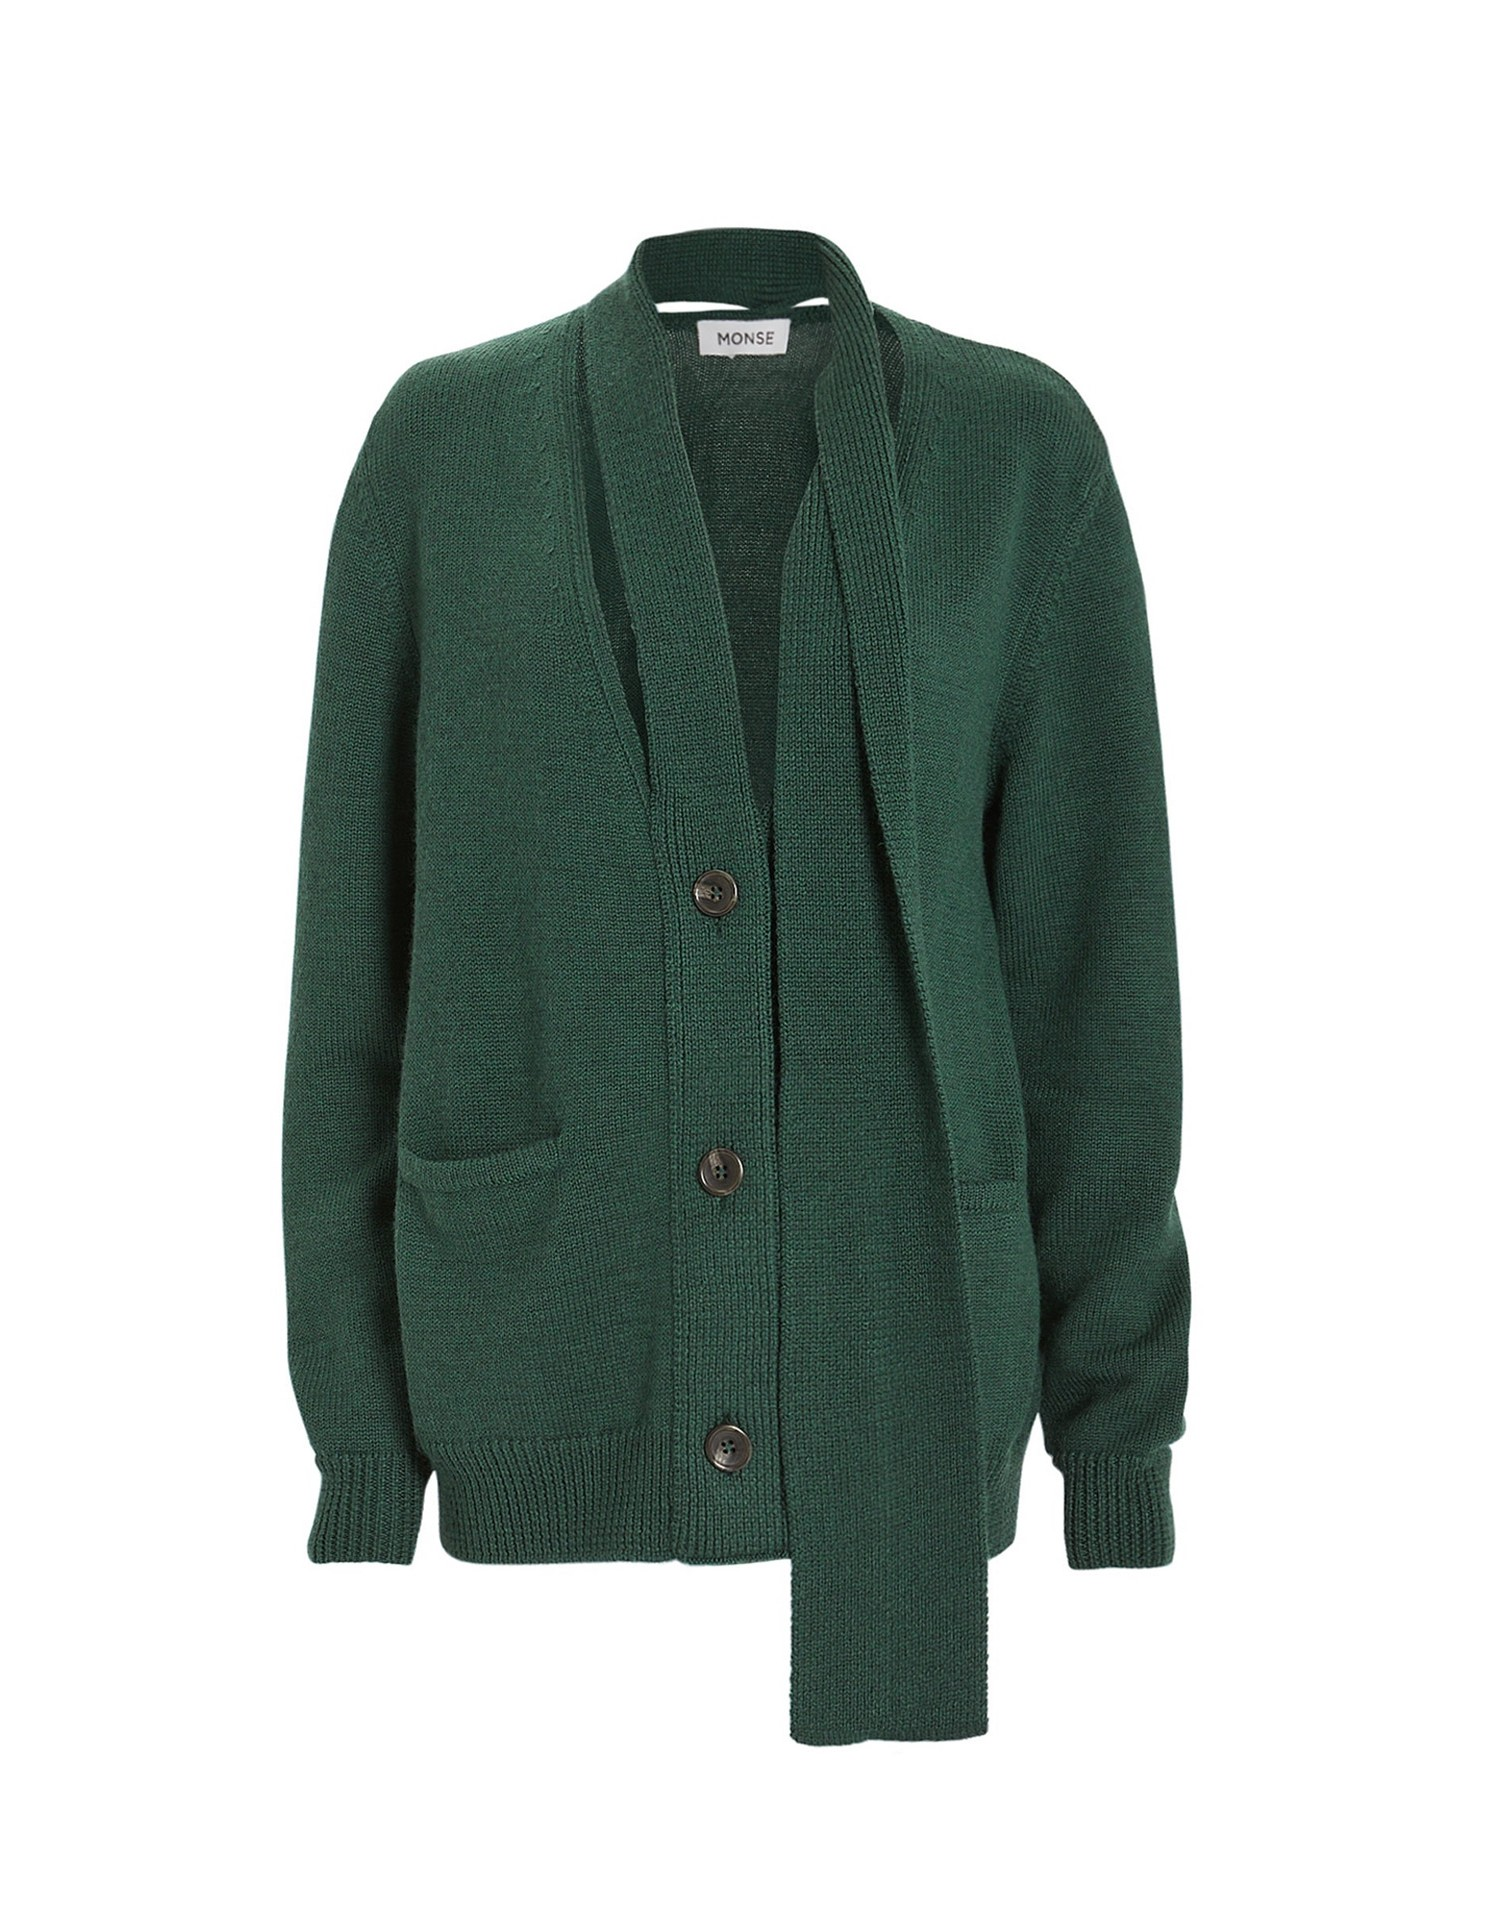 MONSE Scarf Placket Cardigan in Evergreen Flat View